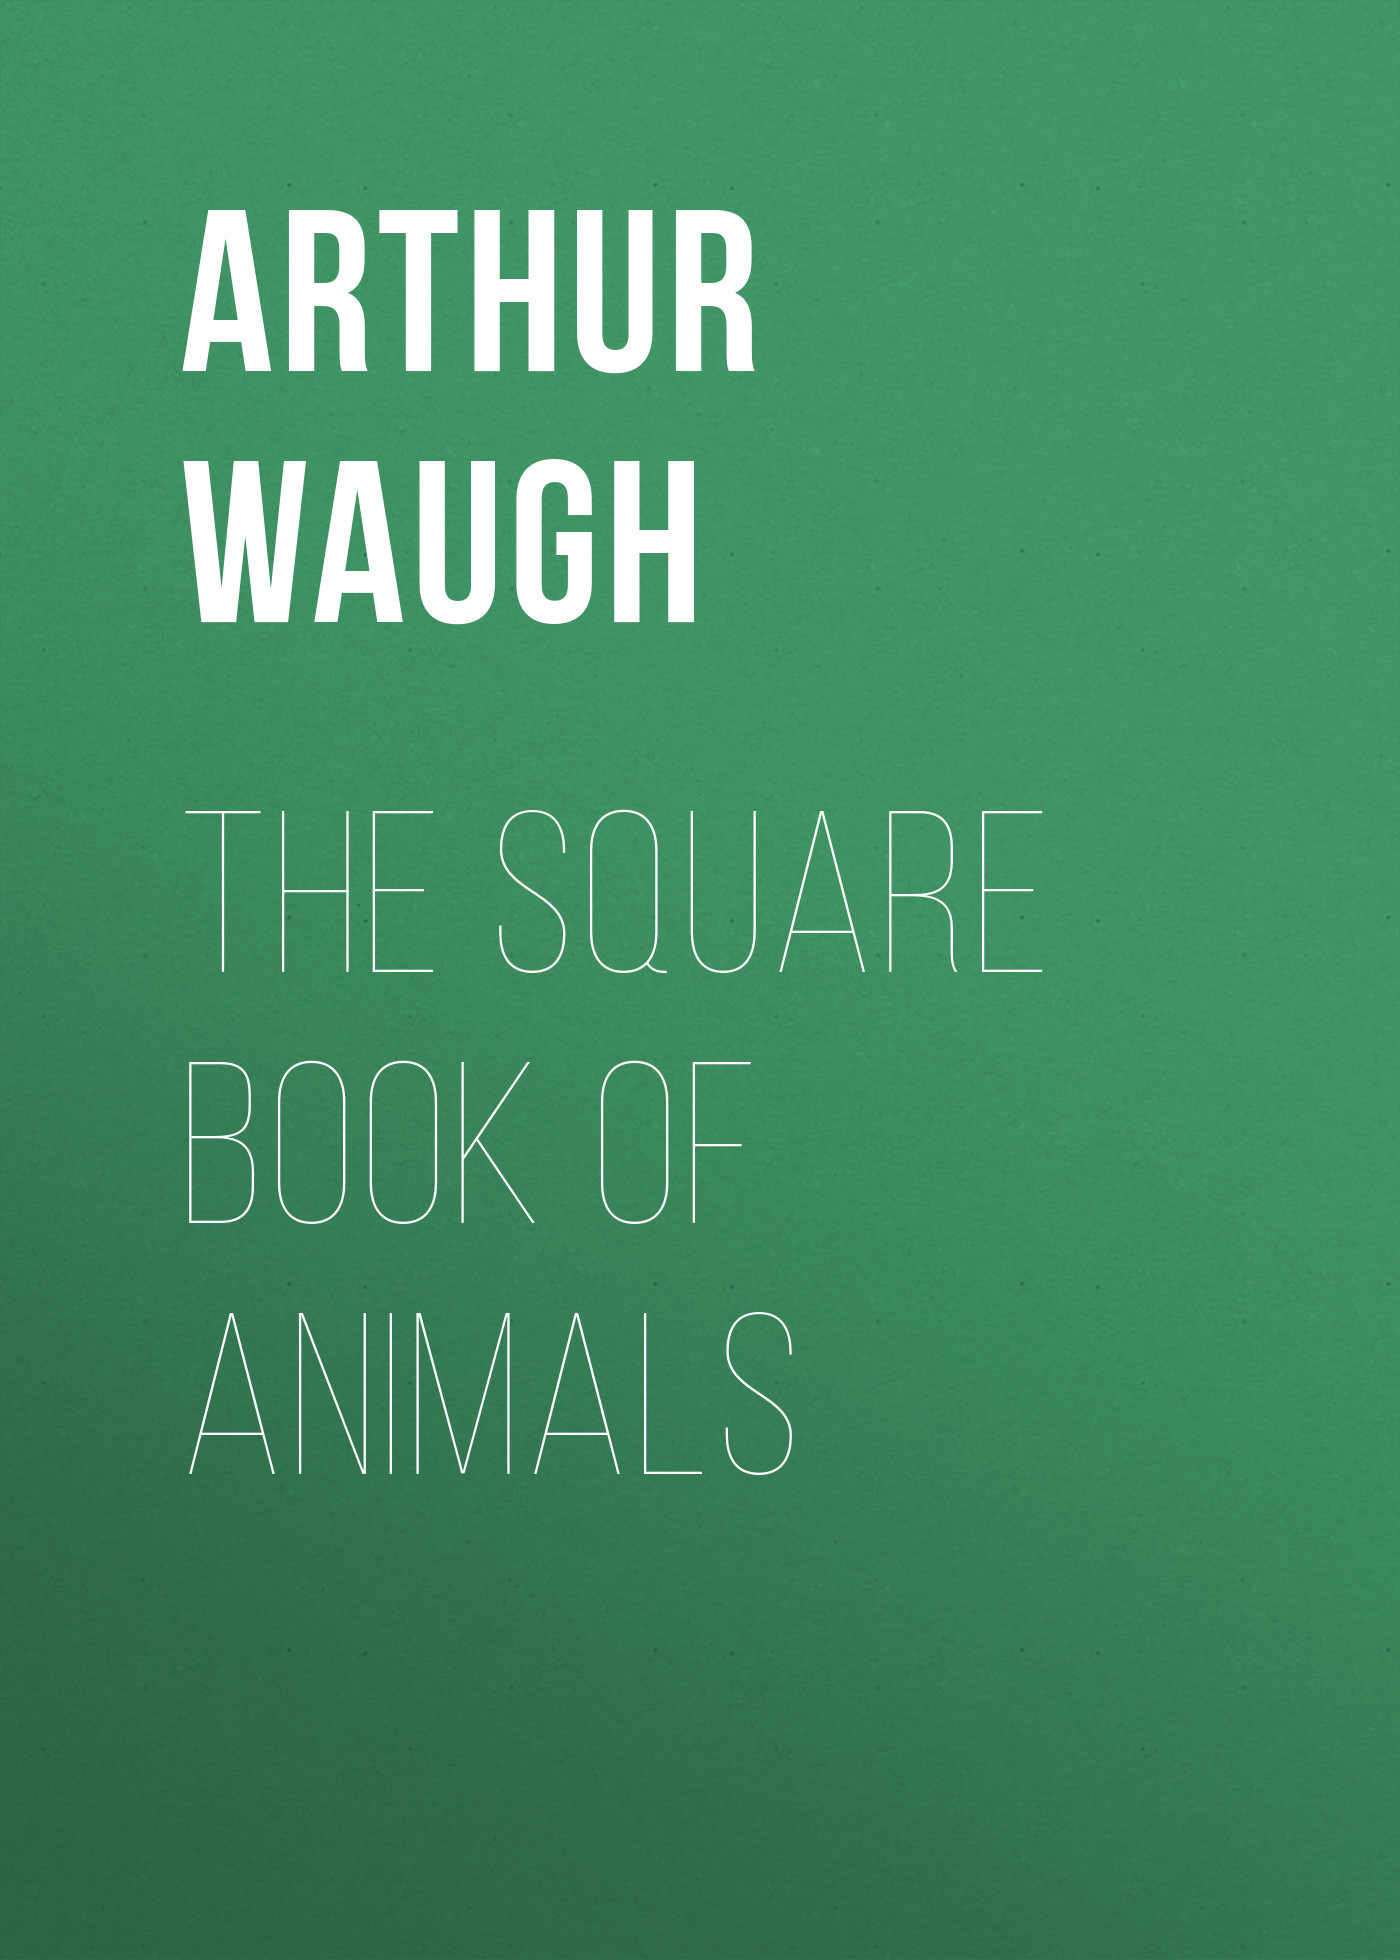 Arthur Waugh The Square Book of Animals